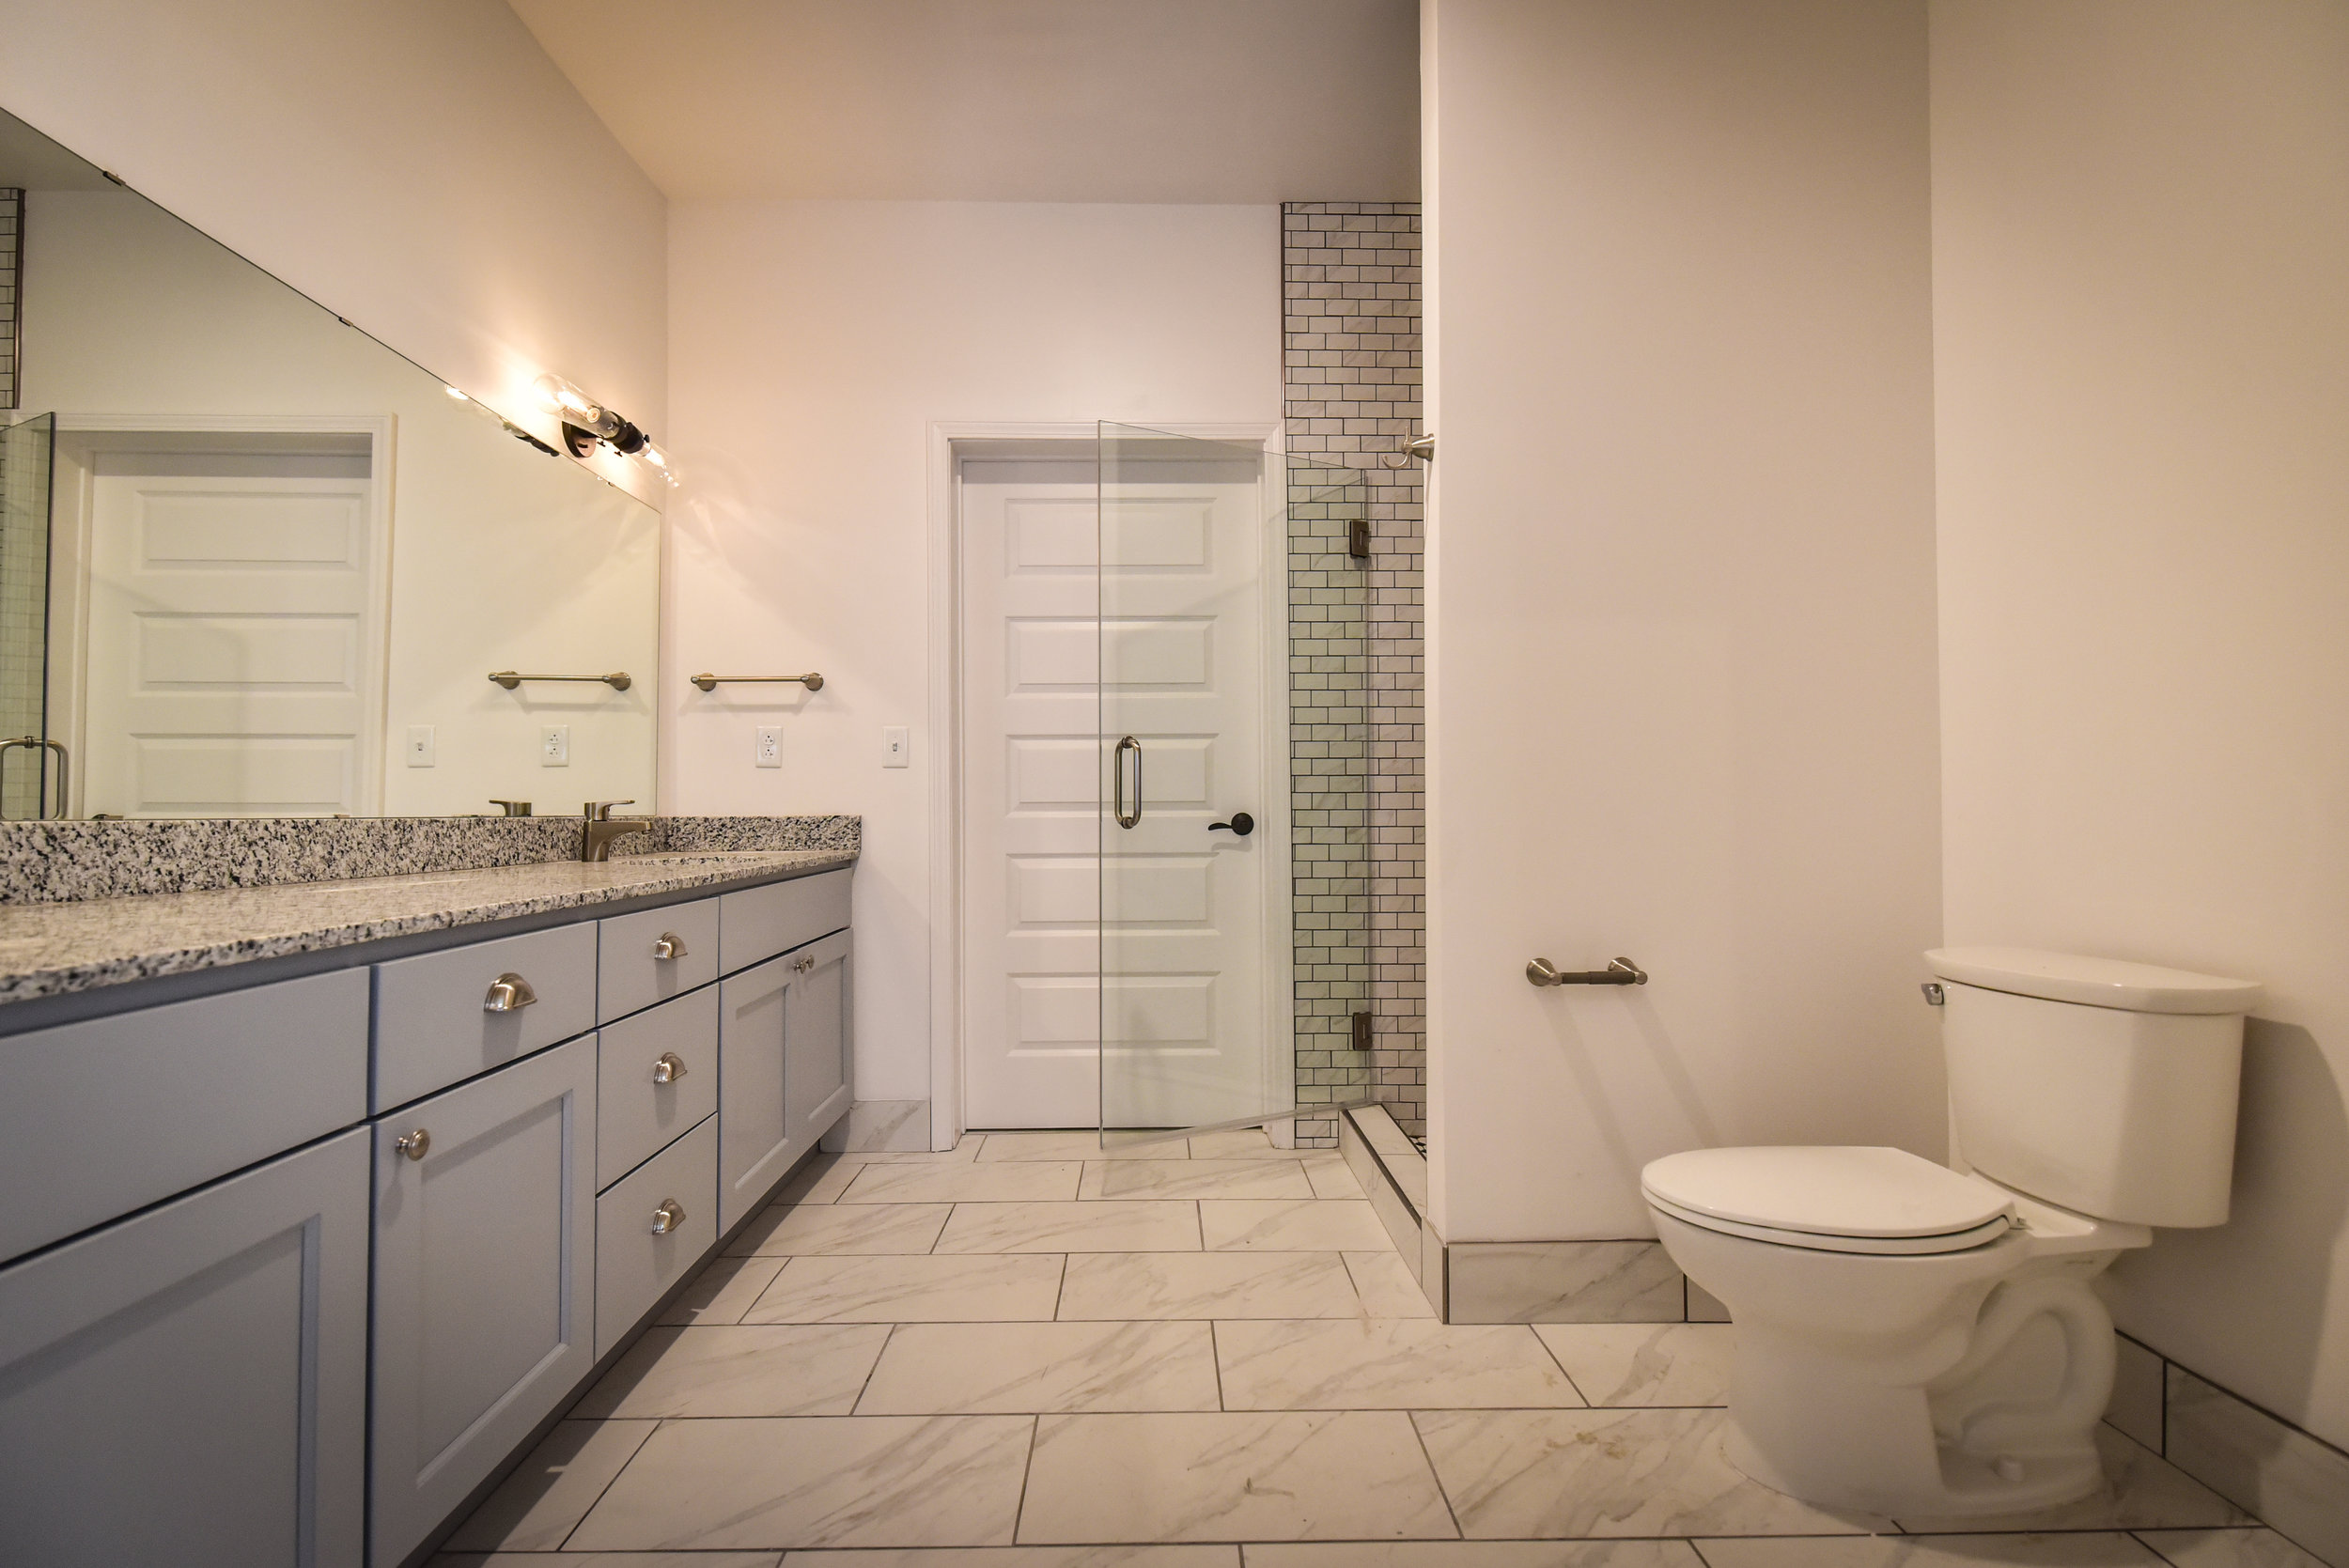 luxury-lofts-rochester-new-bathroom.jpg